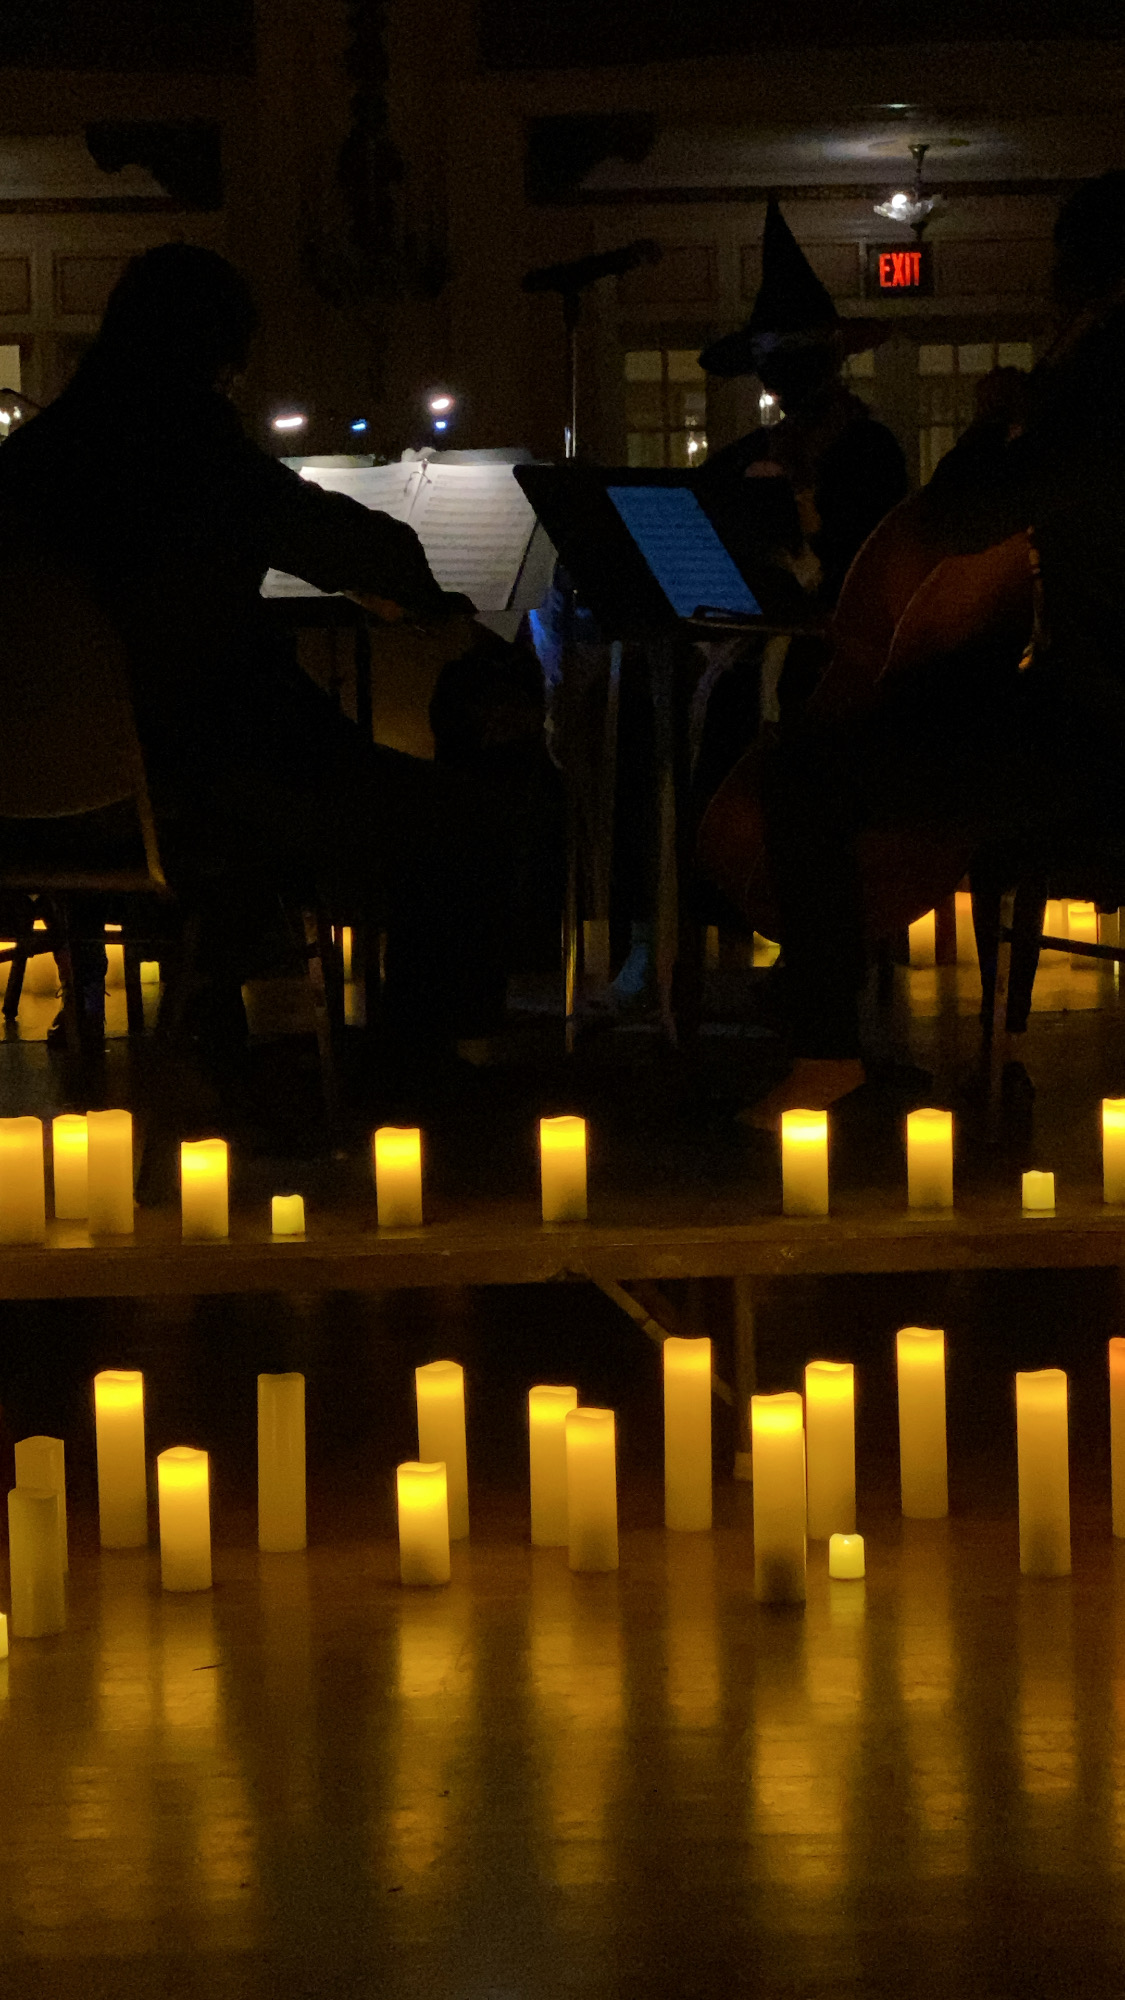 Candlelight Quartet Concert in Detroit Michigan at the Masonic Temple Theatre Written by Annie Fairfax